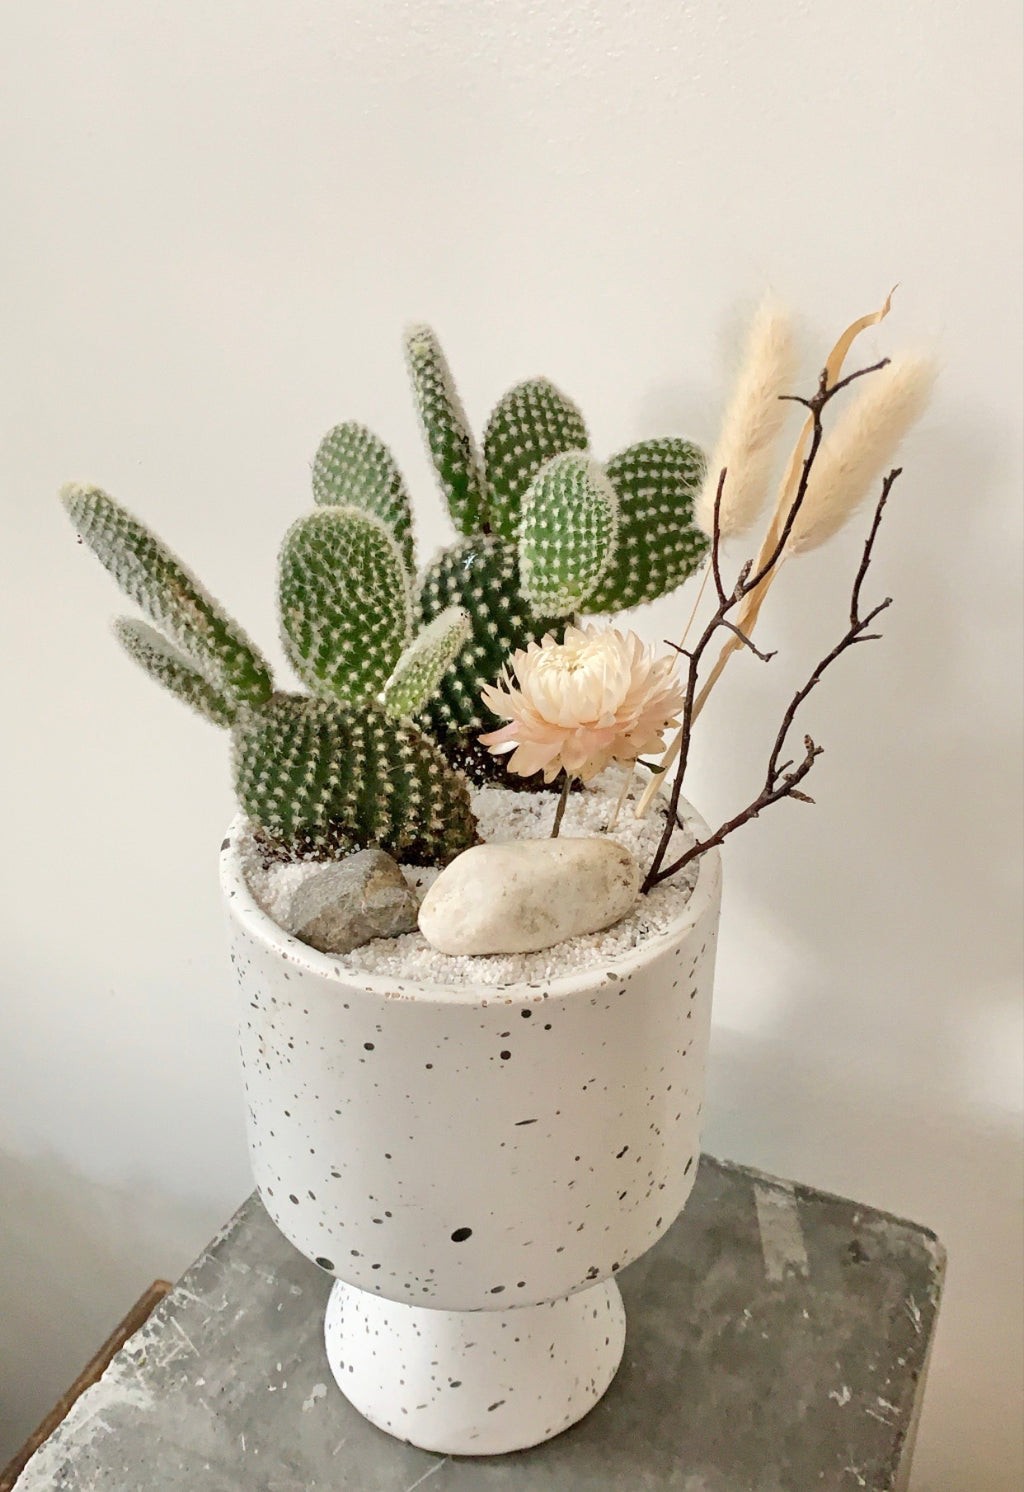 shop.balconi.ca Eco Planter Cactus Whimsy Corners